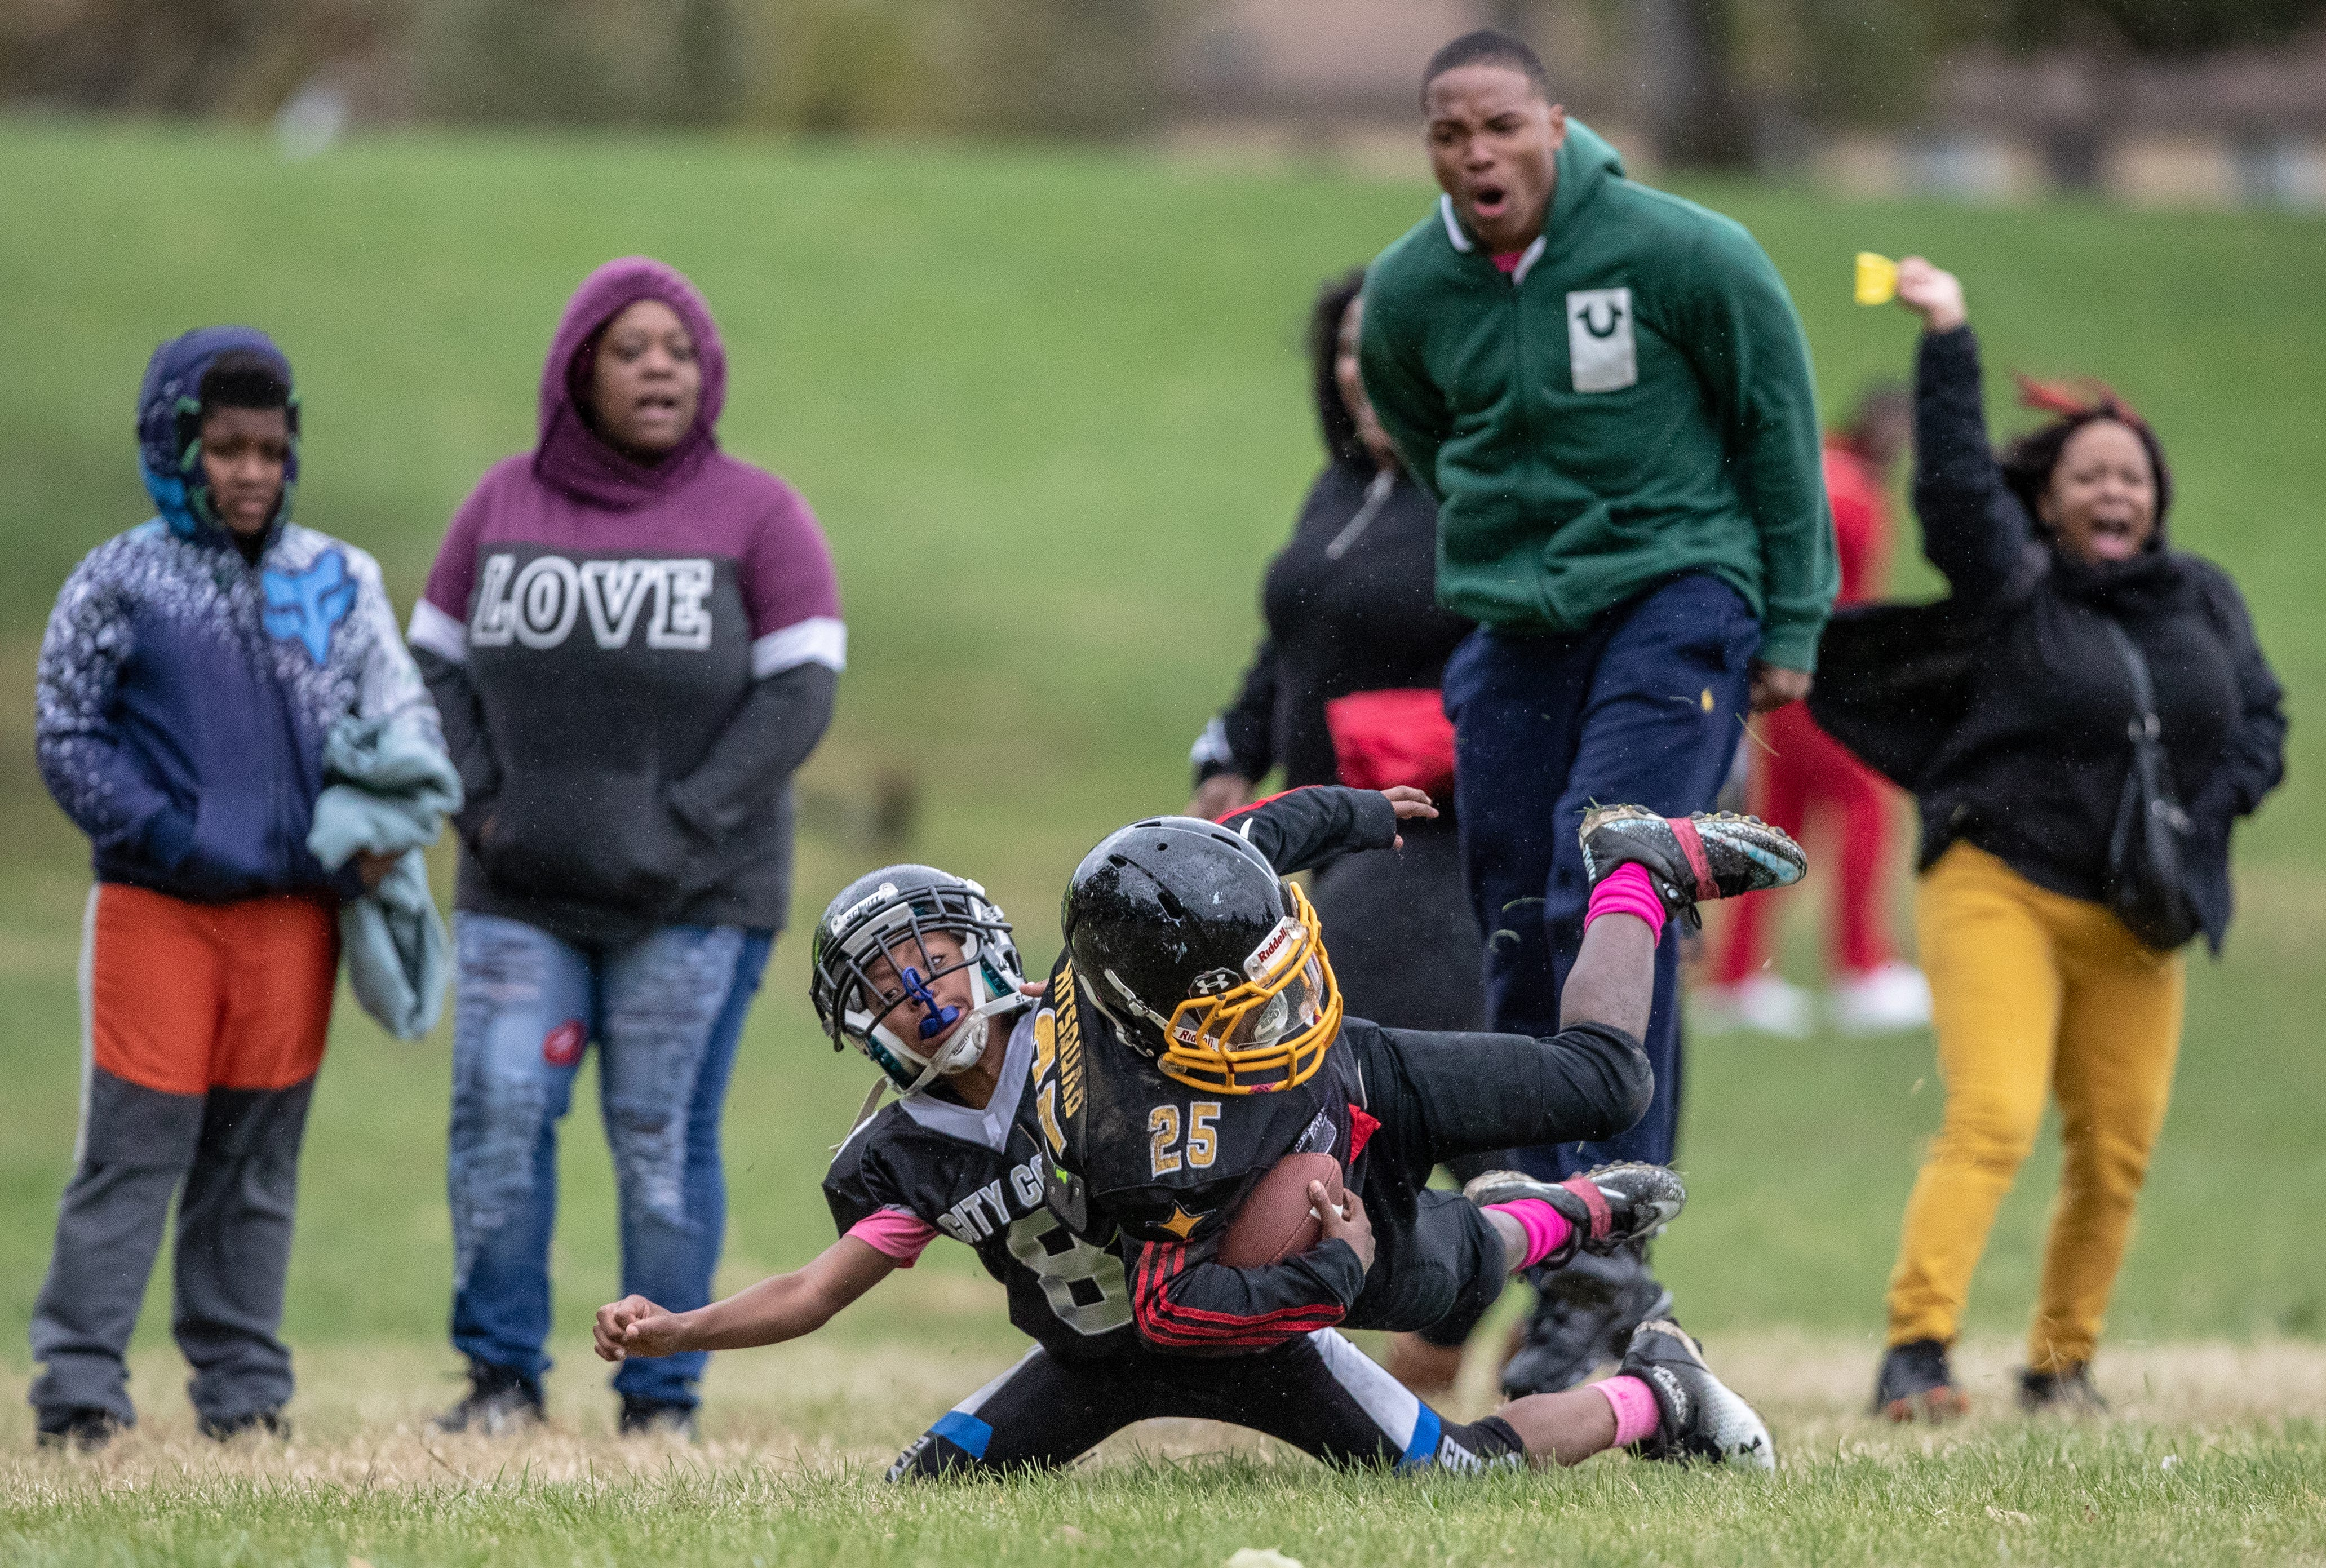 """Indy Steelers fans and family react after a long run during a game on the city's east side. """"This is the group that everyone counted out. This is the group of kids that people thought wasn't going to make it,"""" said Takkara Delaney, a single mother of five with three boys on the Steelers team. """"The heart and soul of that team is caring about those kids. It's not just the sport. The sport is the reason we probably get together but the reason we stay together is because there's a love and a bond there that can't be broken."""""""